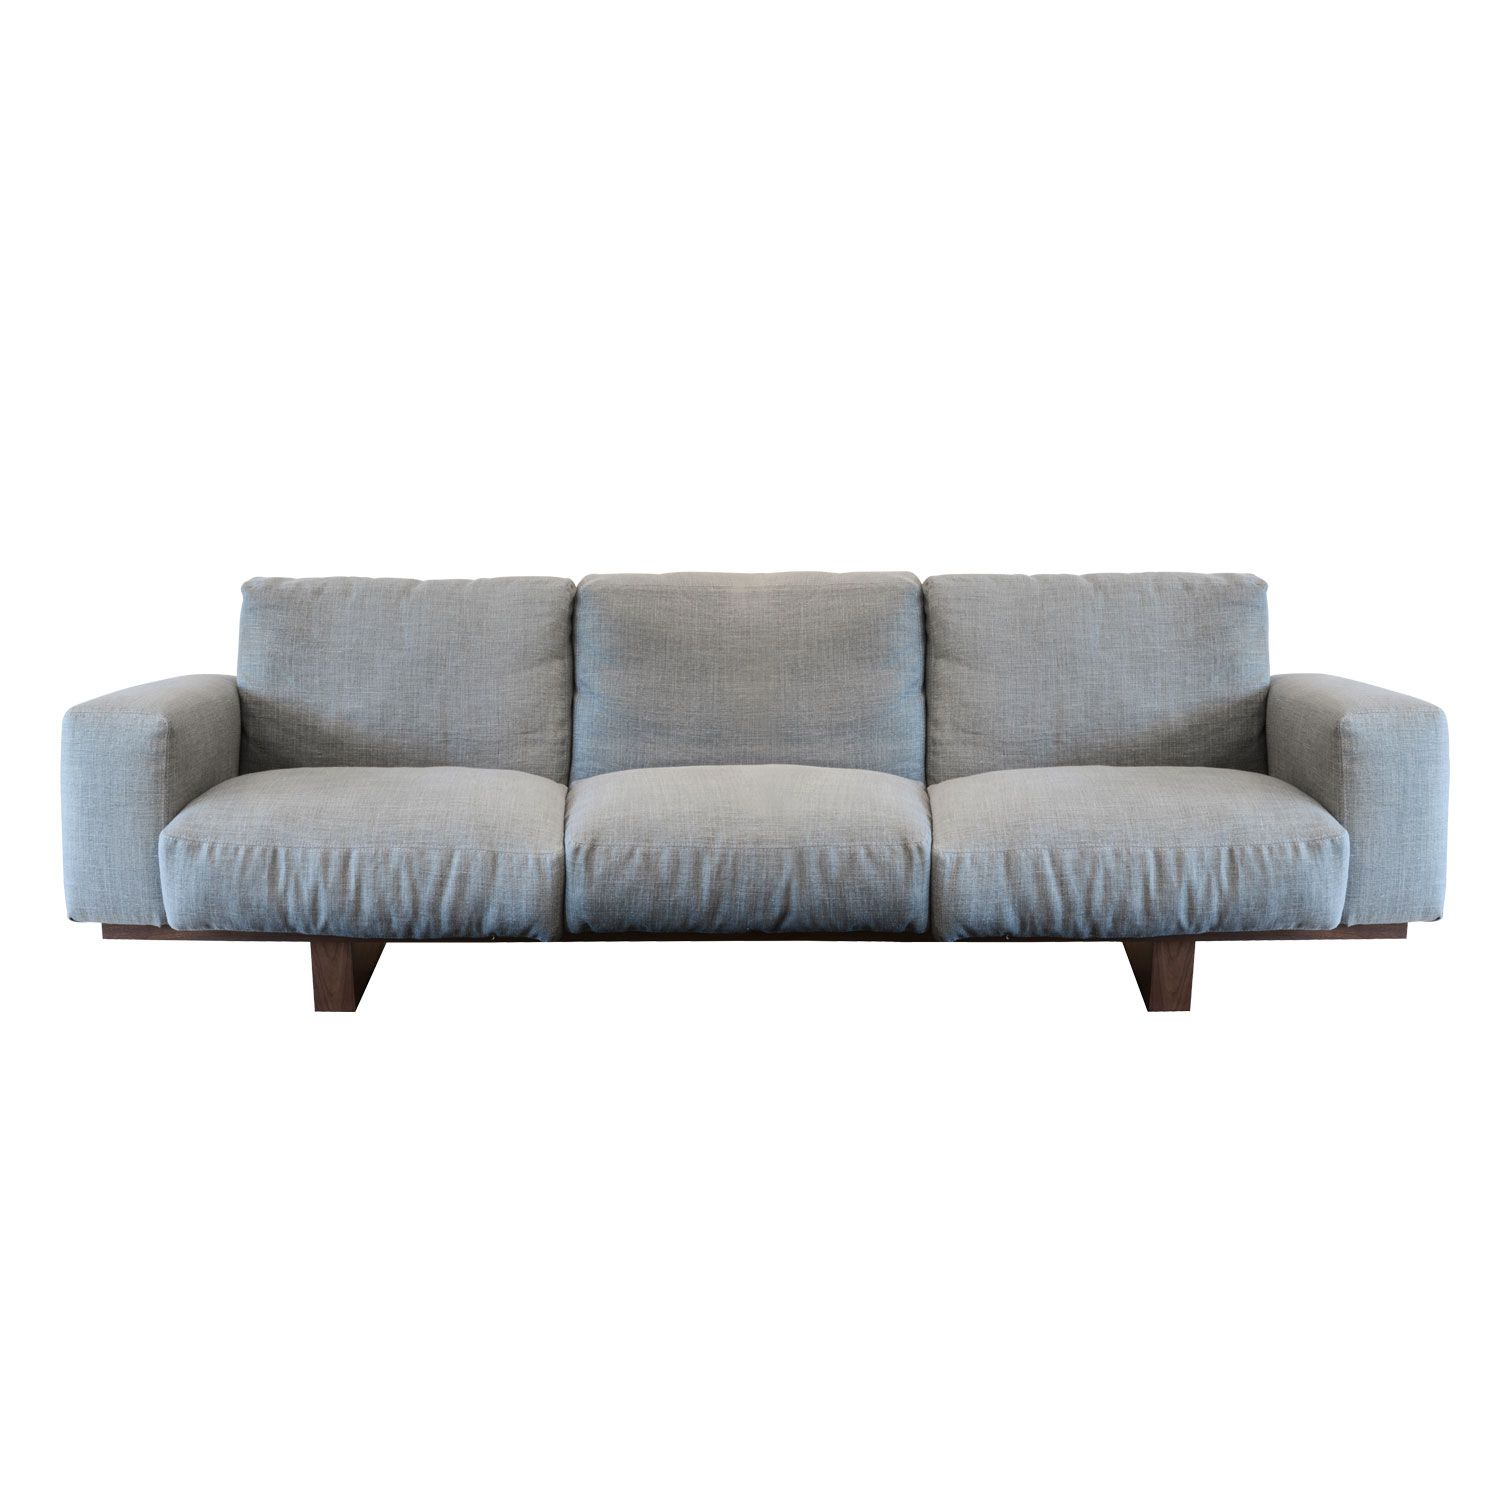 Modern Furniture Utah heal's sofas | riva 1920 utah sofa - sofas - sofas - furniture